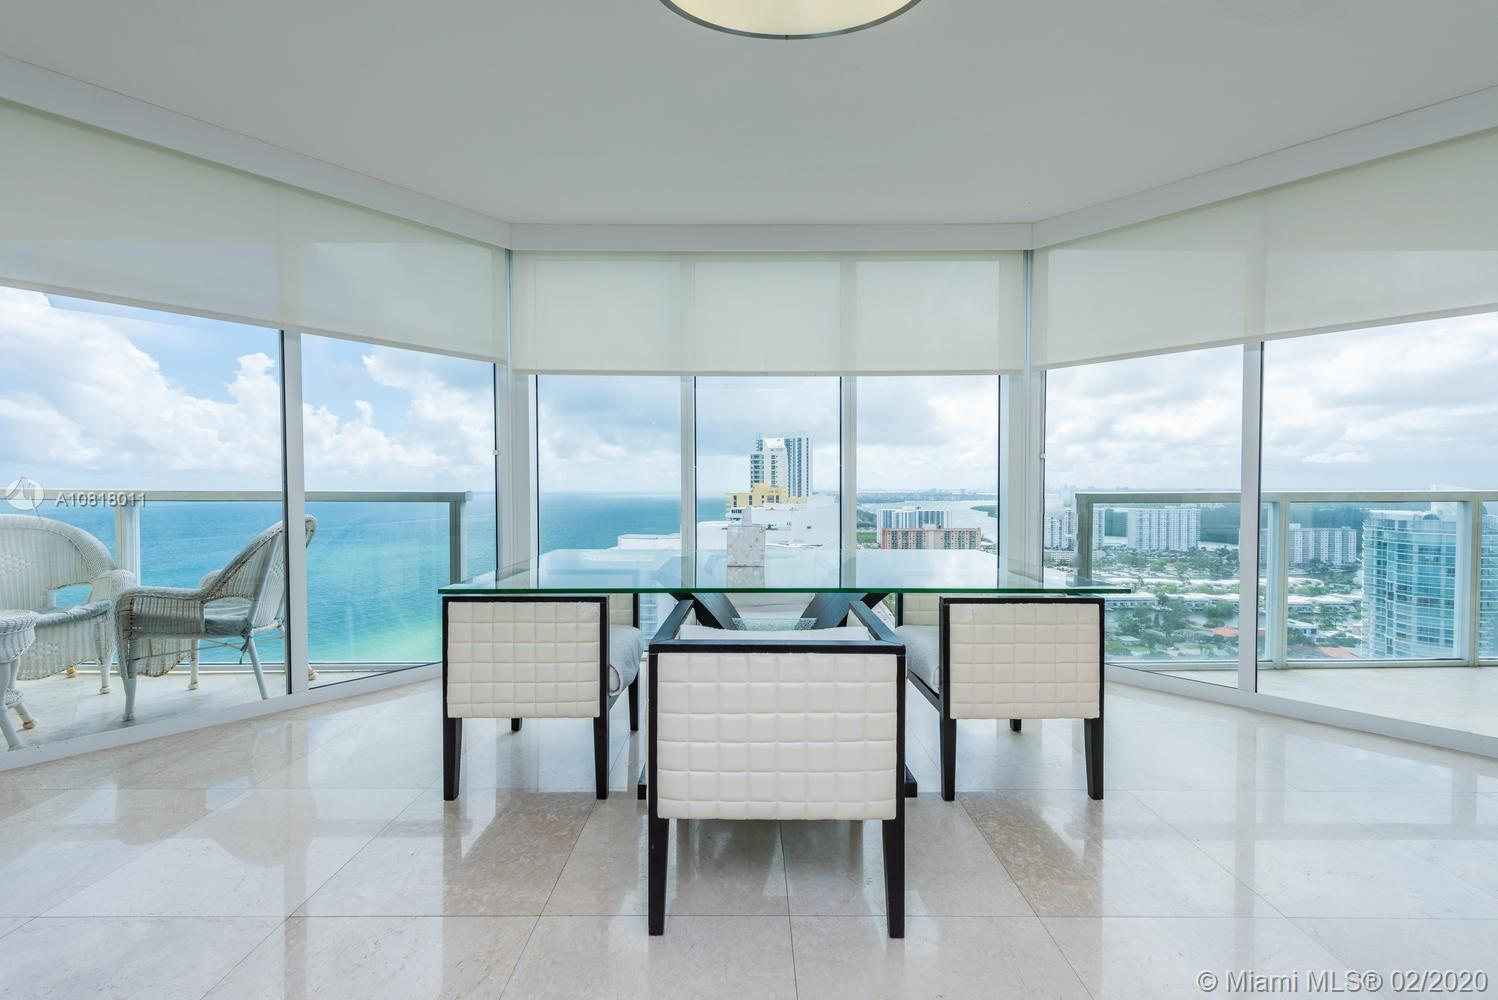 La Perla #3508 - 16699 collins ave (avail 6 June) #3508, Sunny Isles Beach, FL 33160